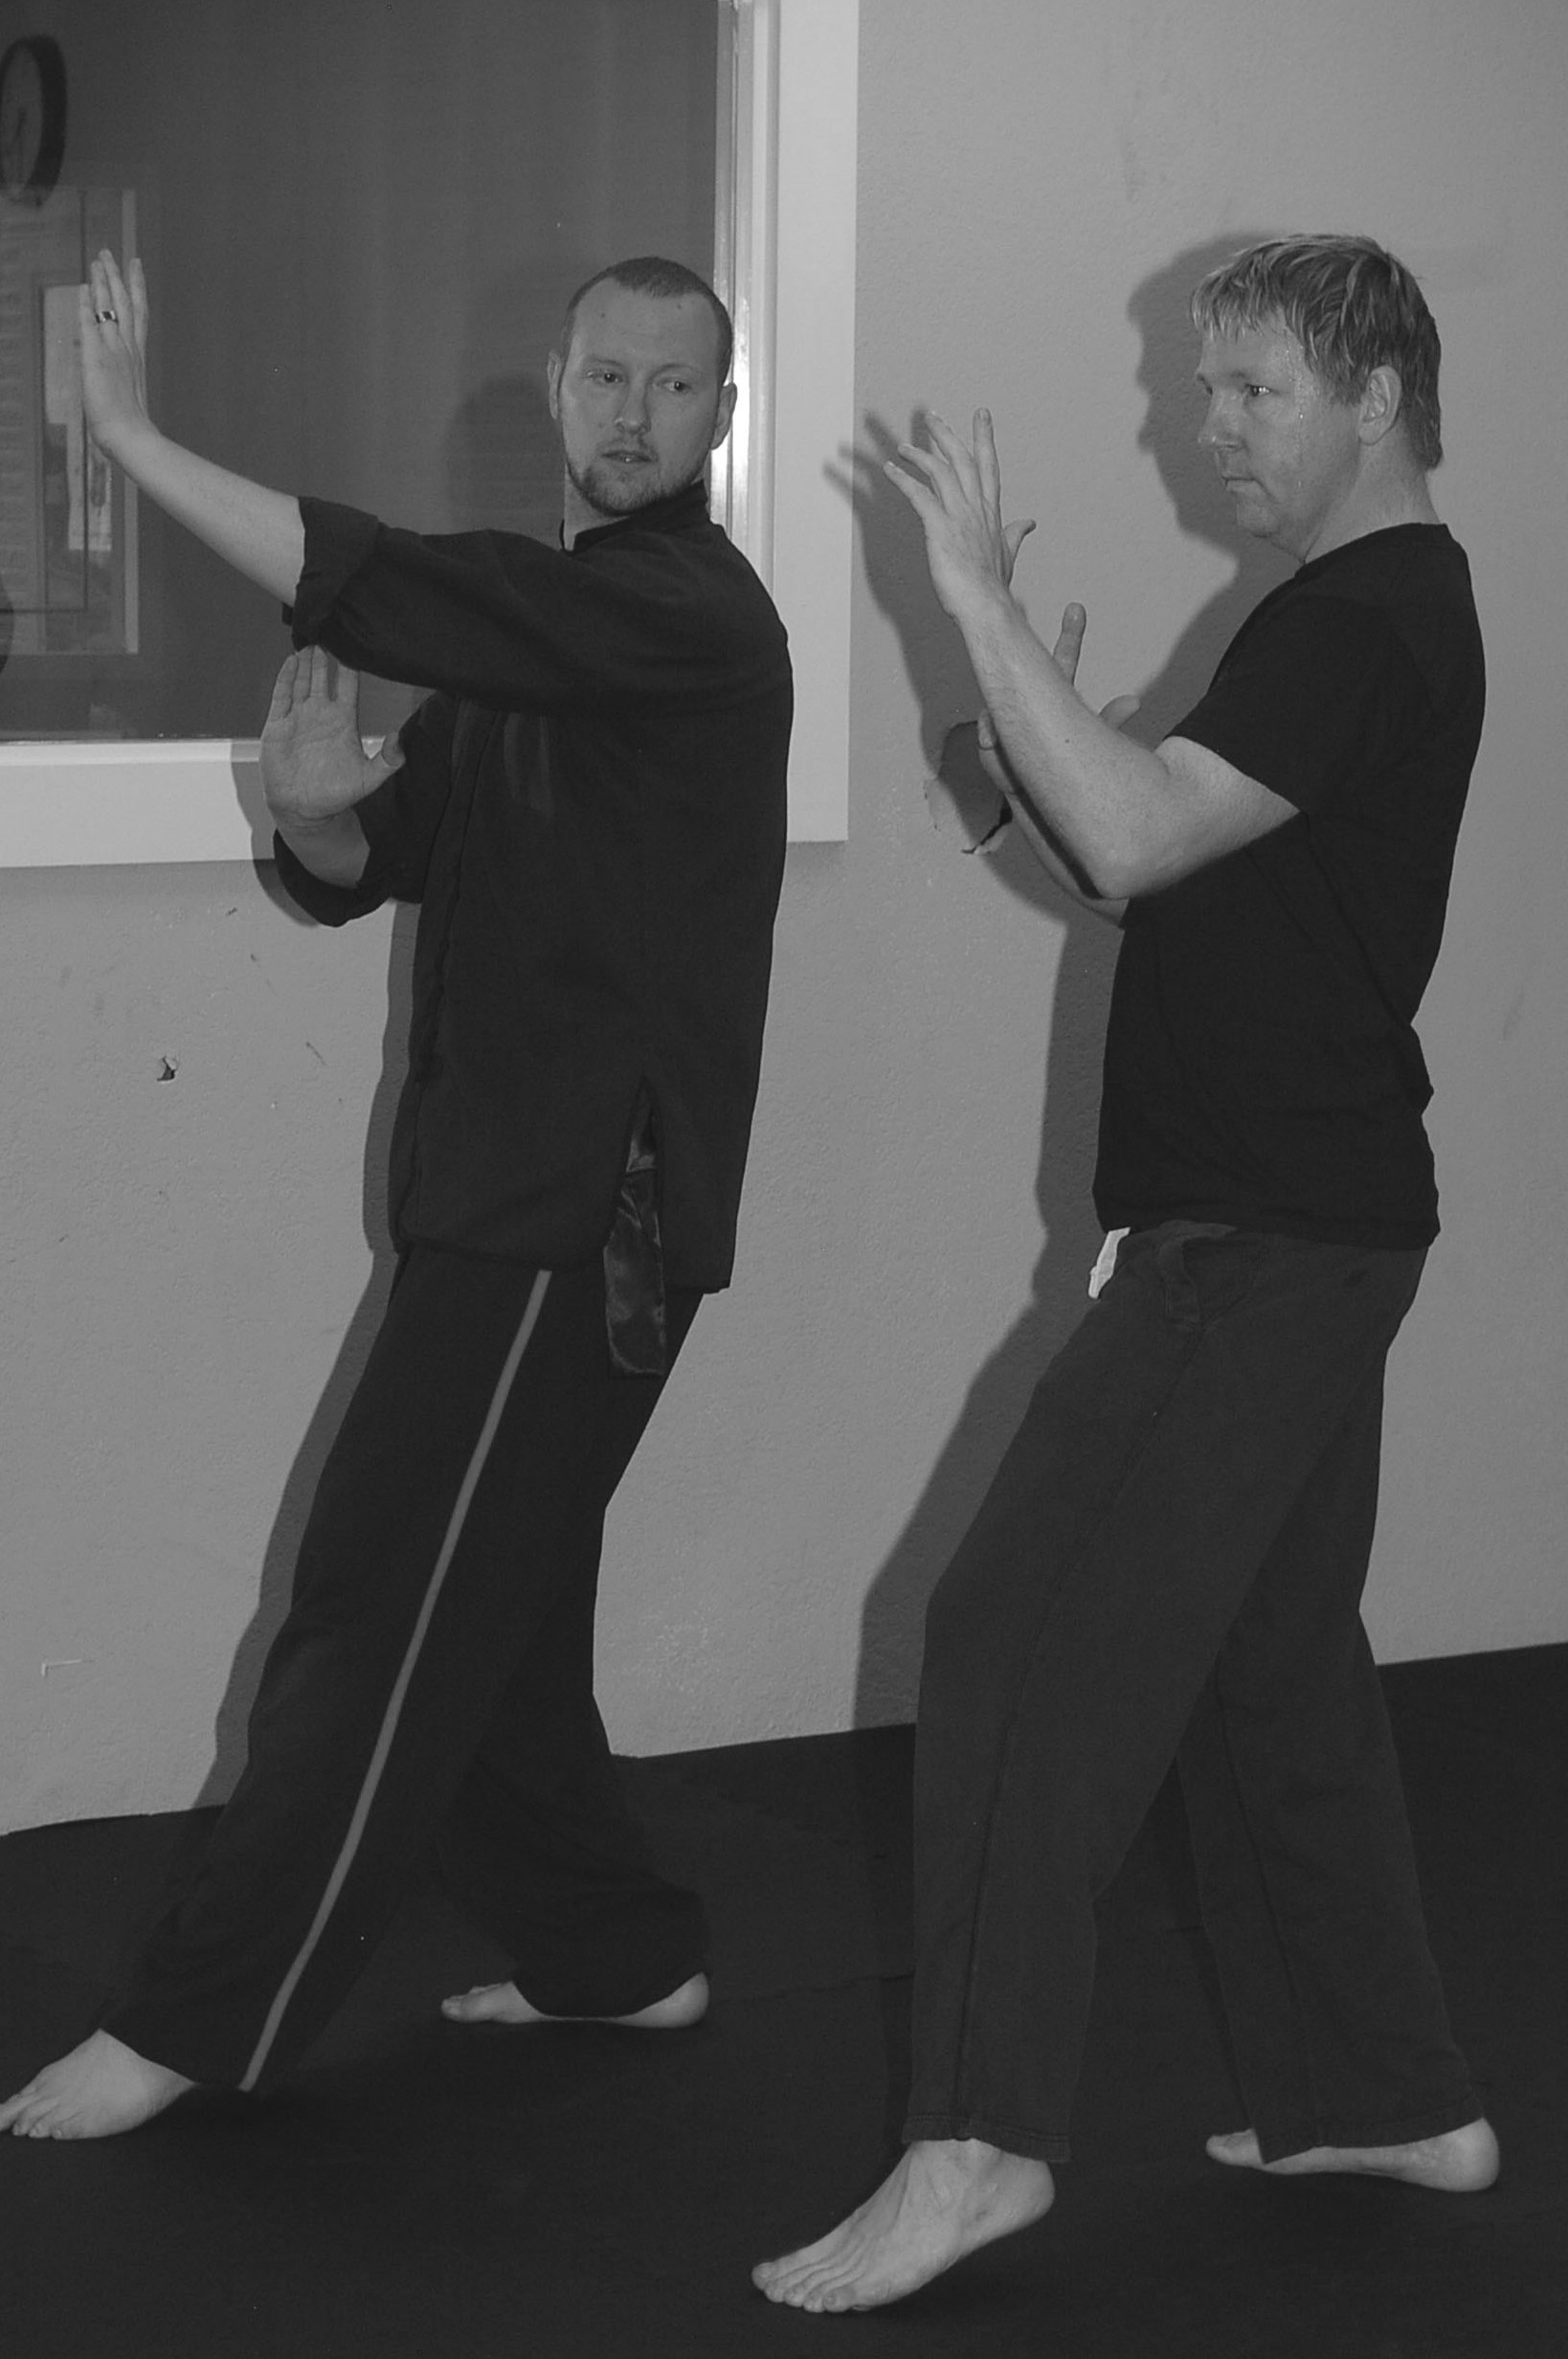 - All new students start with private instruction prior to participating in group classes. This process is part of our beginners program designed for new members to gain confidence in the basics before training with other adults.